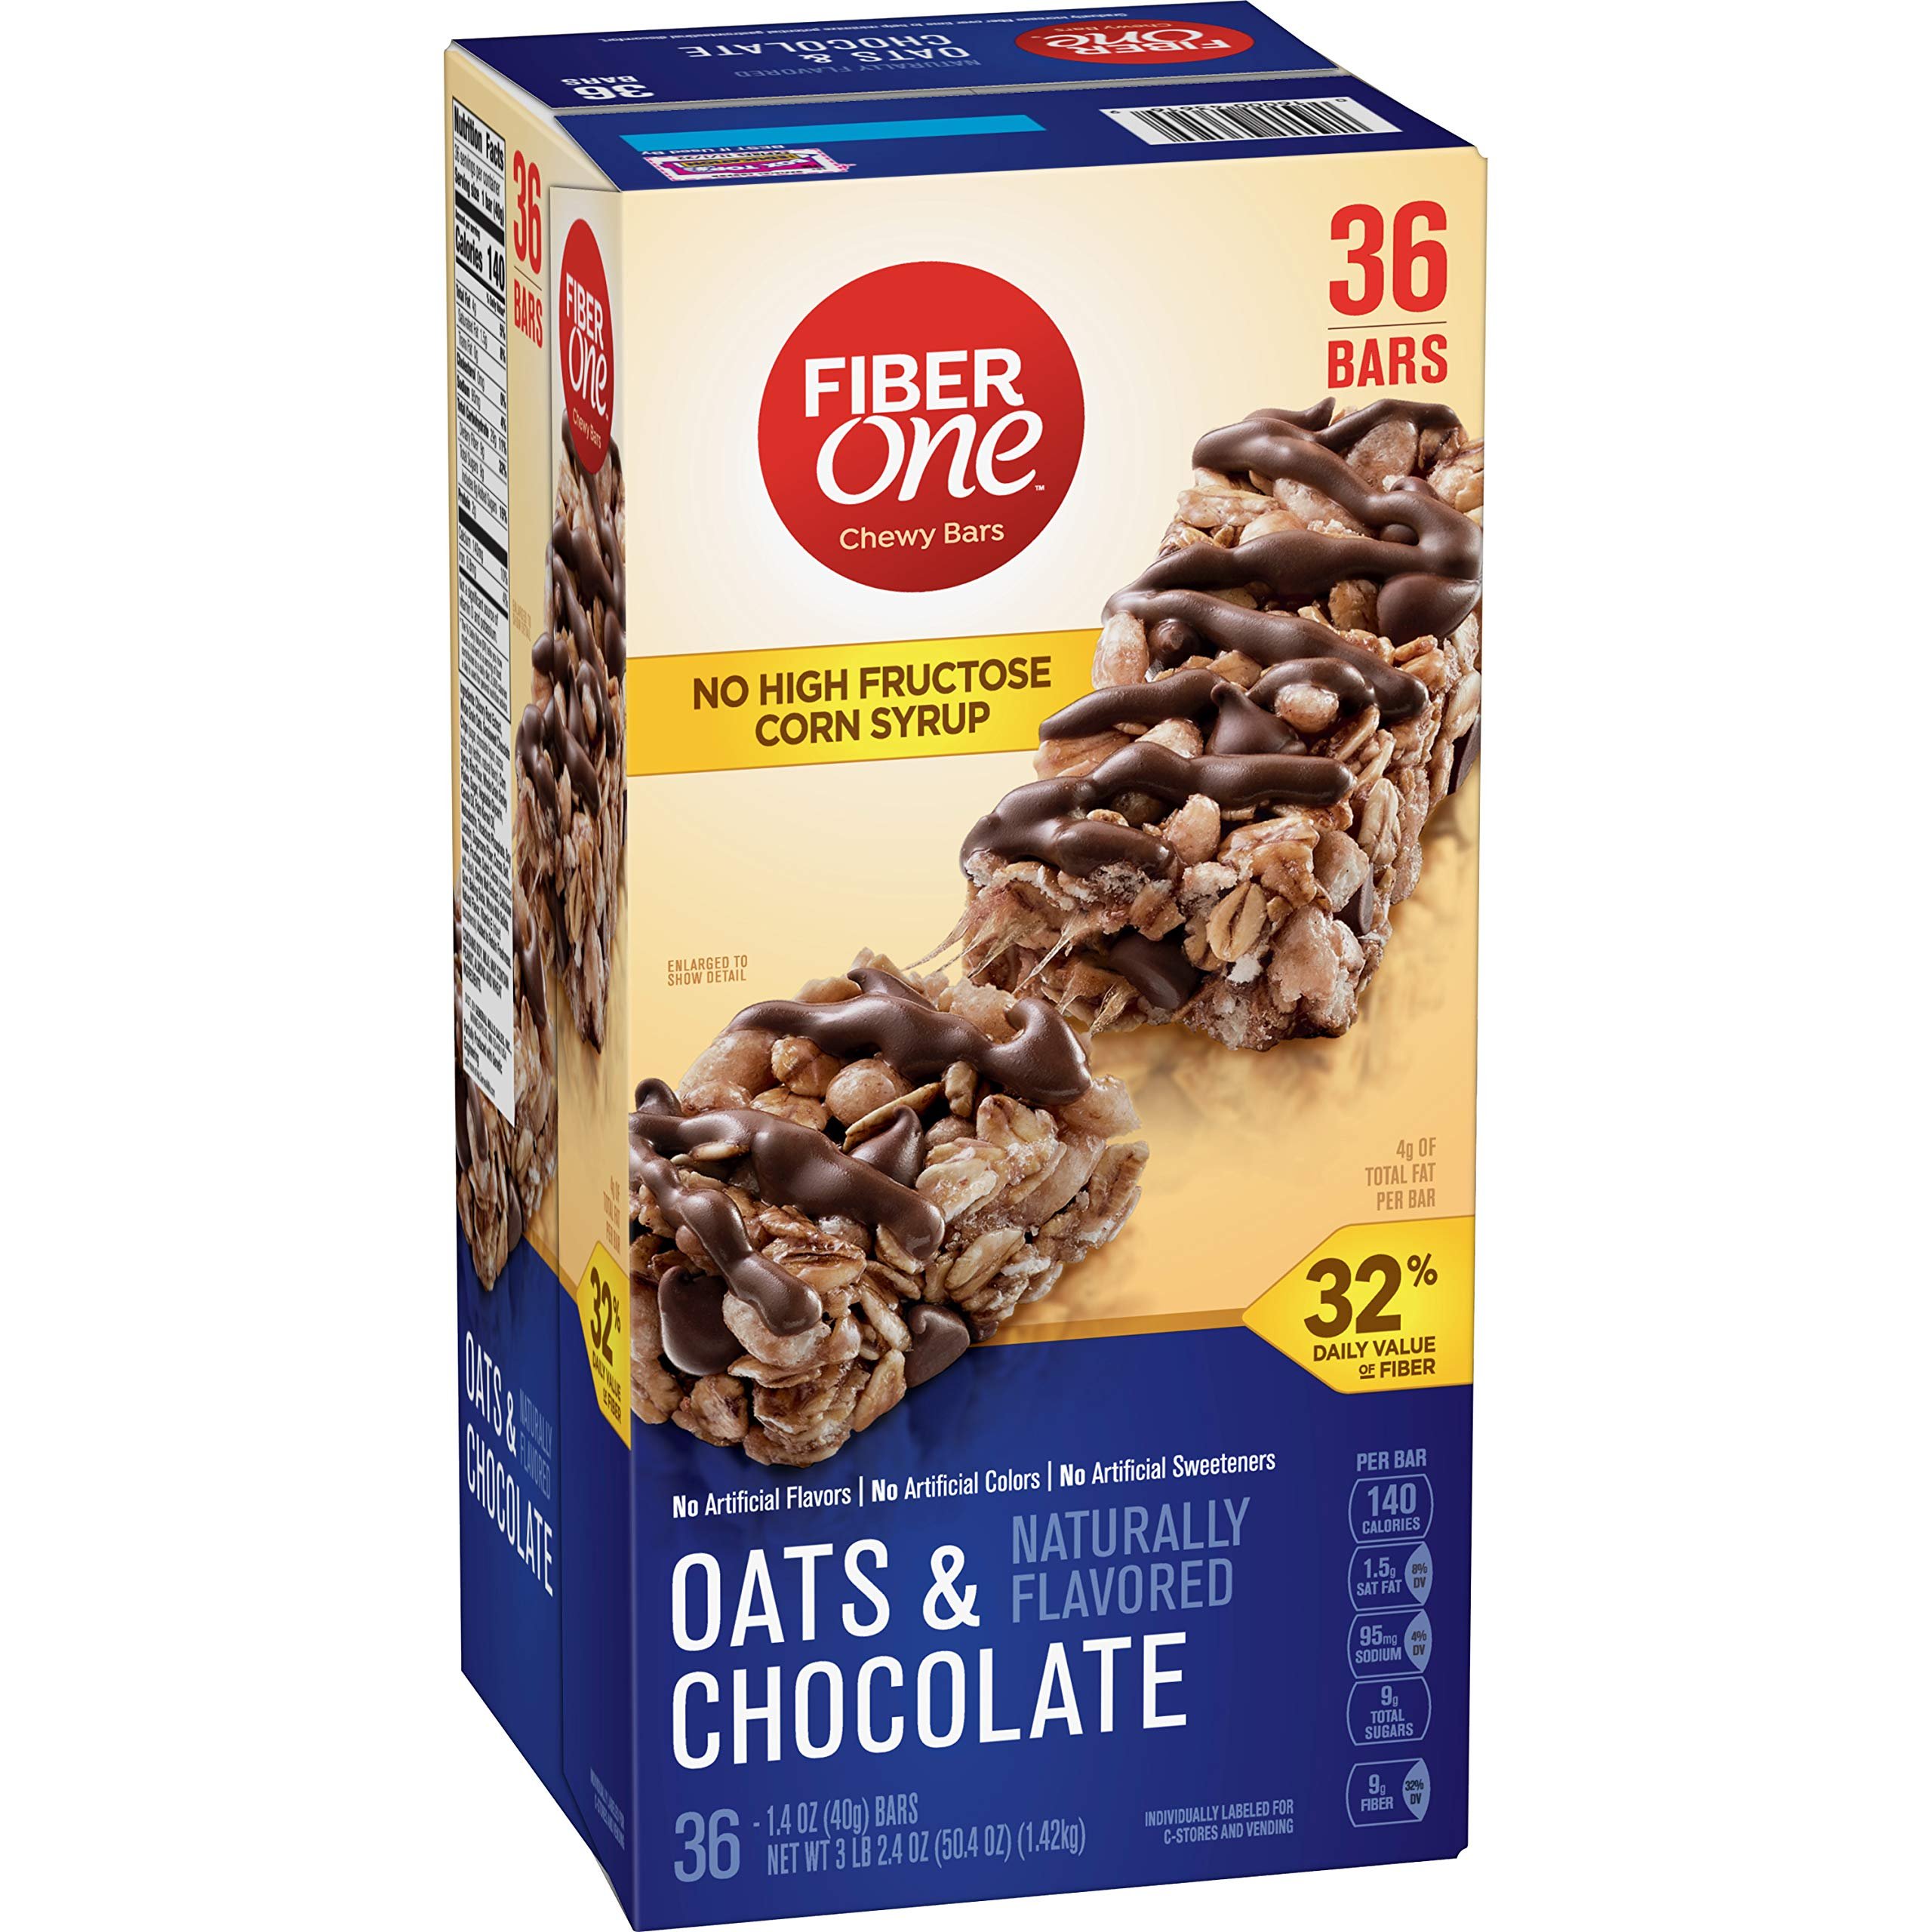 Fiber One Chewy Bars, Oats and Chocolate, 36-1.4oz Bars by Fiber One